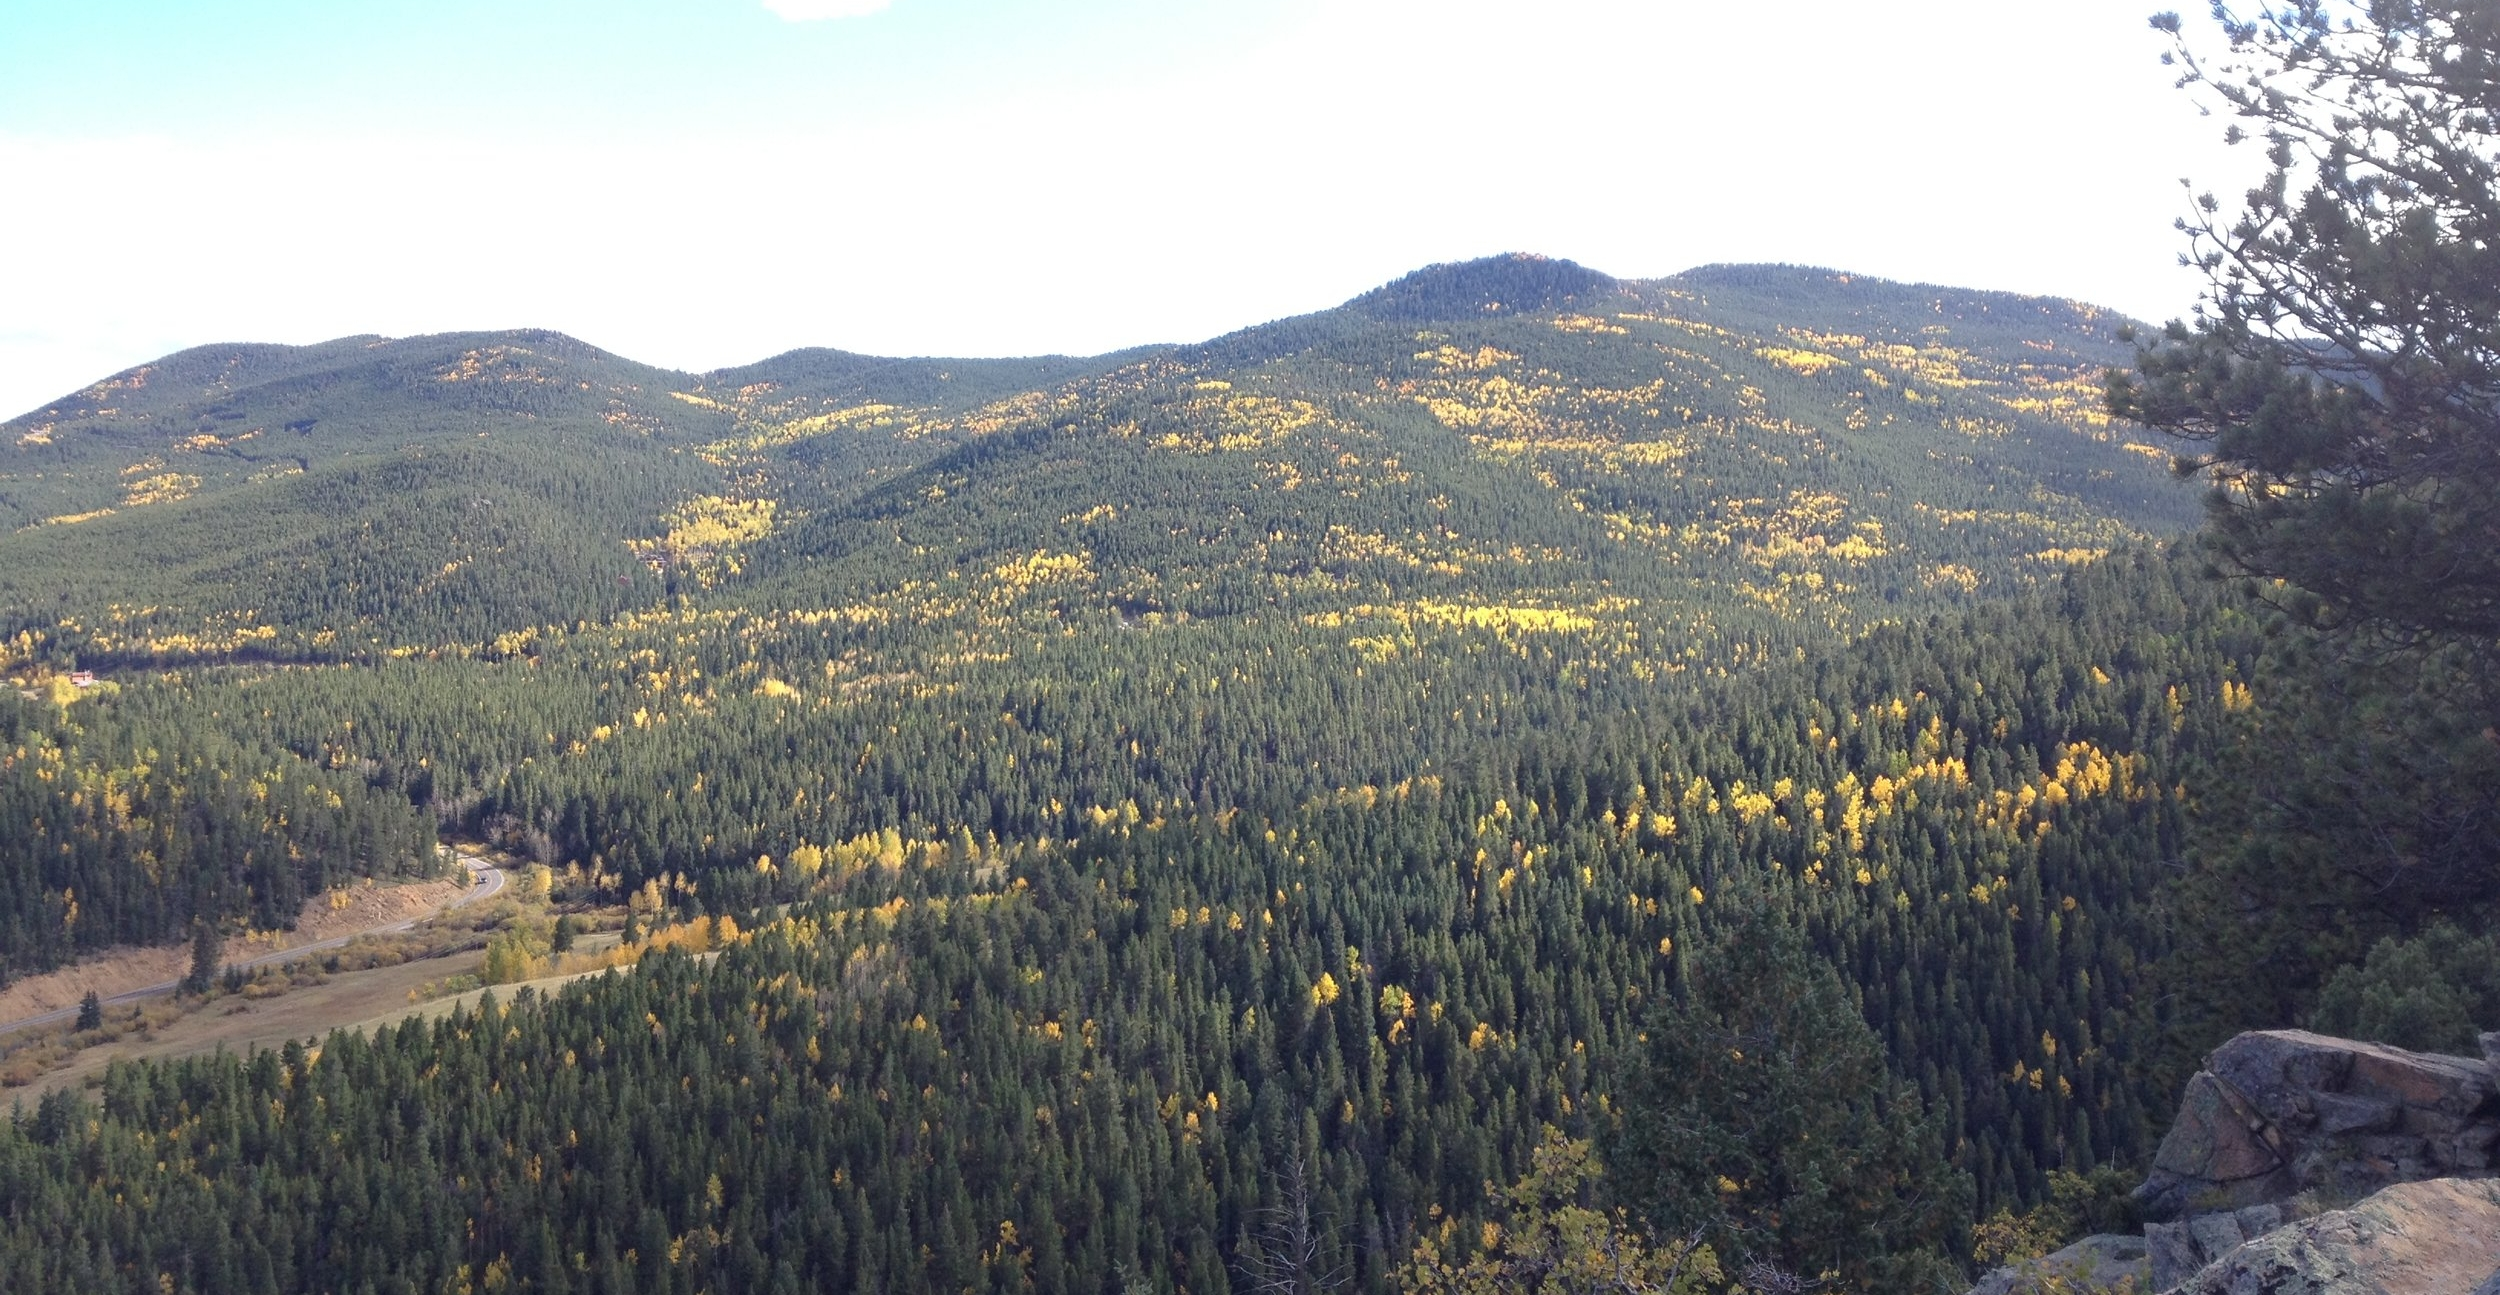 Colorado has beautiful and unique hunting opportunities. Receiving a Colorado Hunting Violation for a small error can be a humbling experience, but a hunting violation attorney consultation on your rights can help you get back on the mountain in no time.